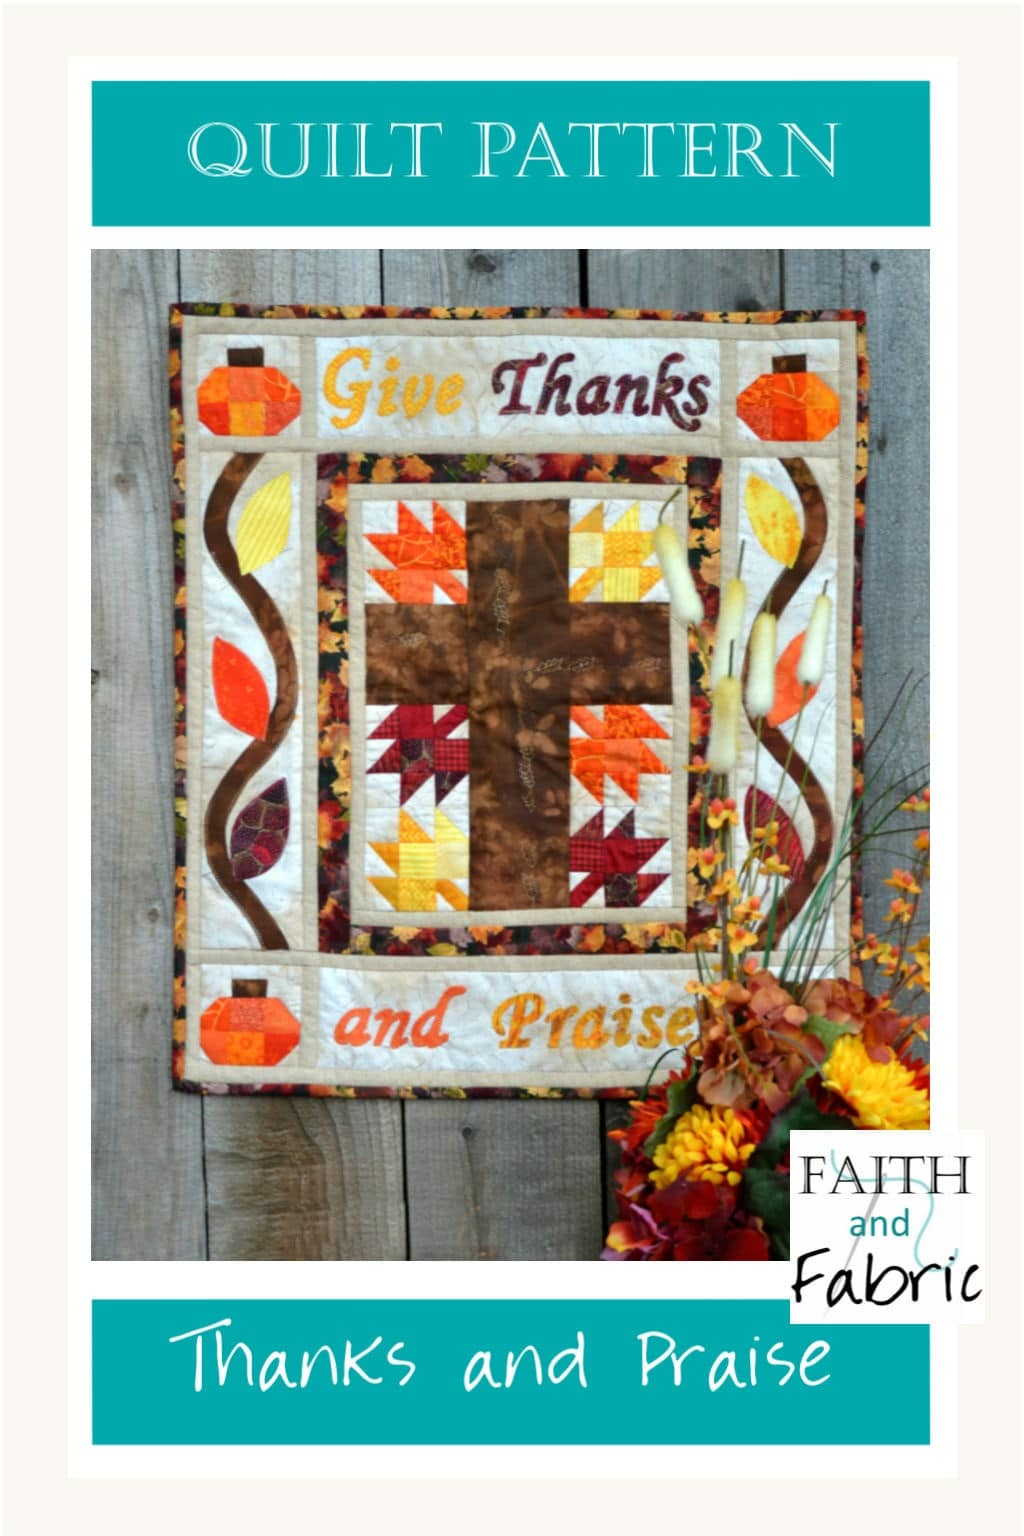 Celebrate all that we have to be thankful for with this Give Thanks and Praise quilt pattern. It brings the warmth of Thanksgiving and fall / autumn into your home!